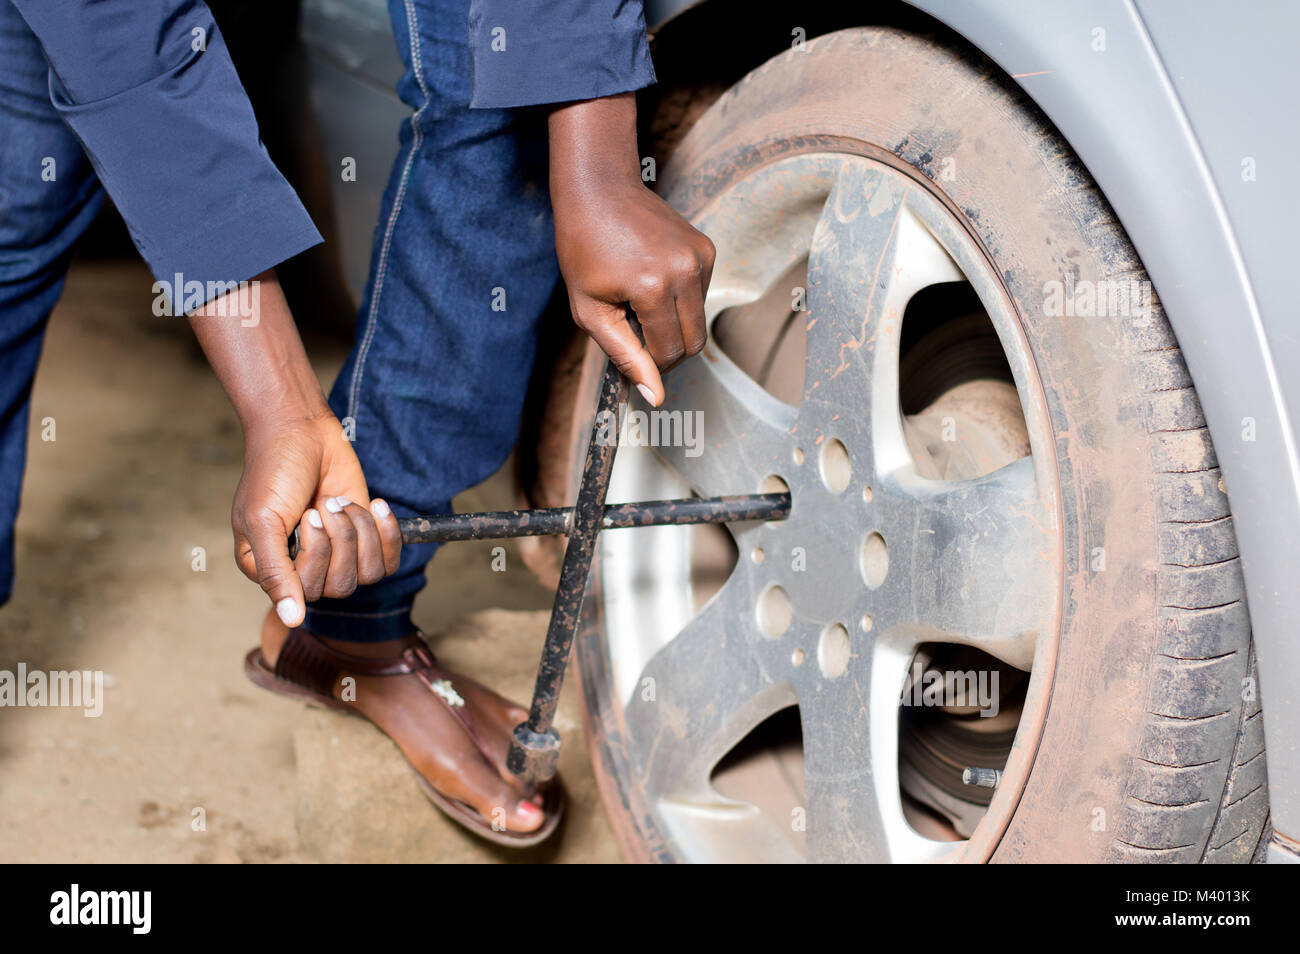 Closeup  of mechanic's arms remove the tire of a car in workshop - Stock Image